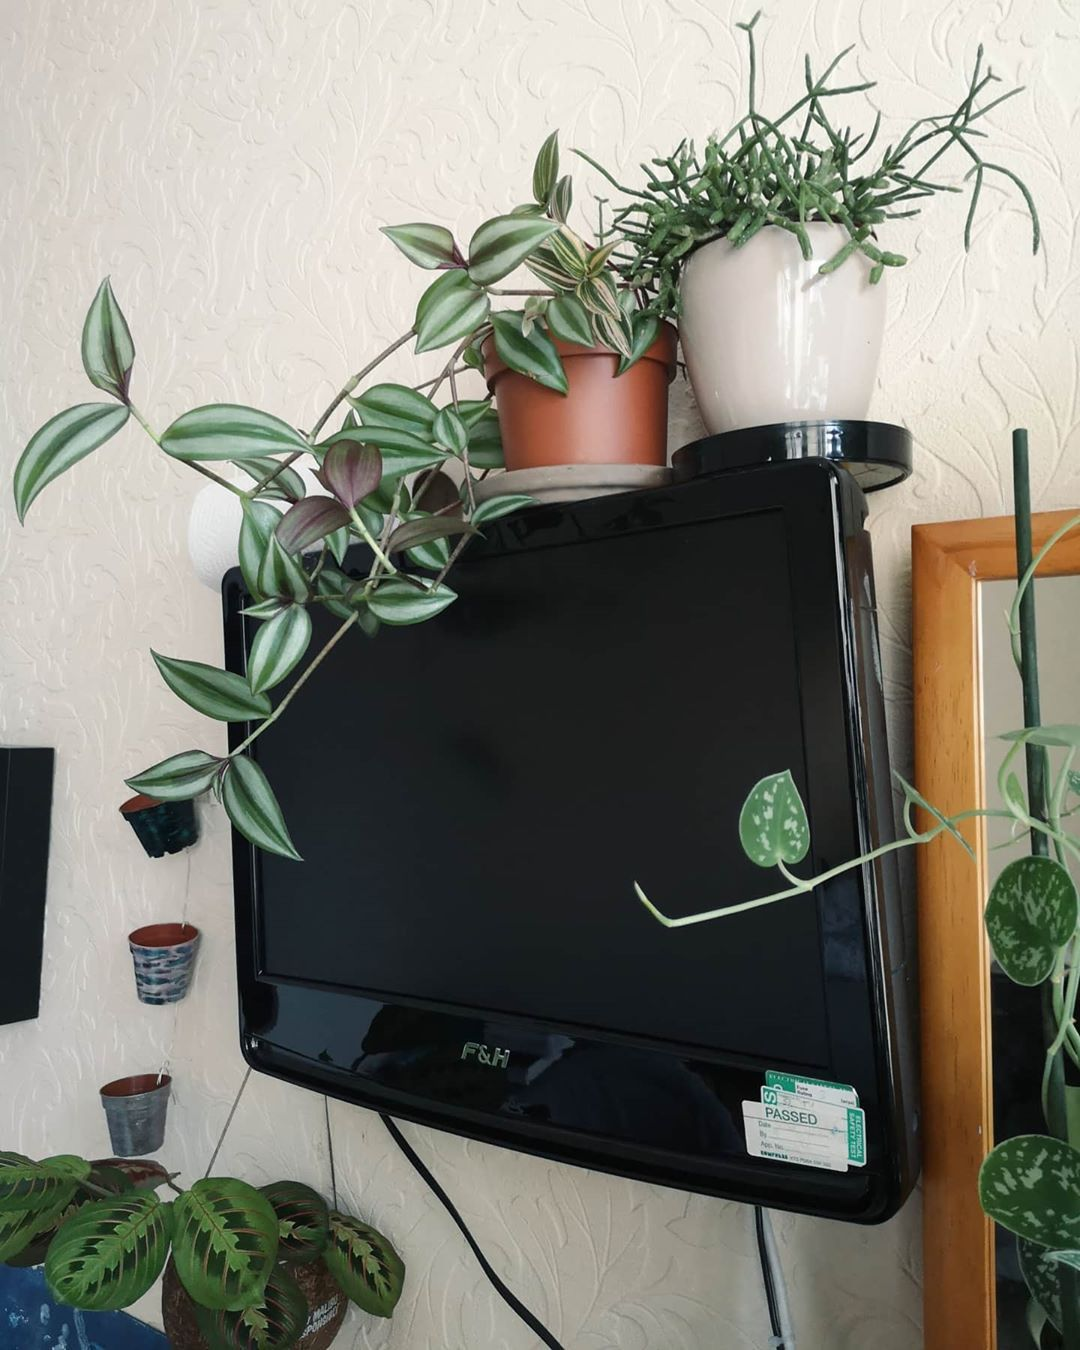 TV? No, thank you. I'd rather look at my plants instead